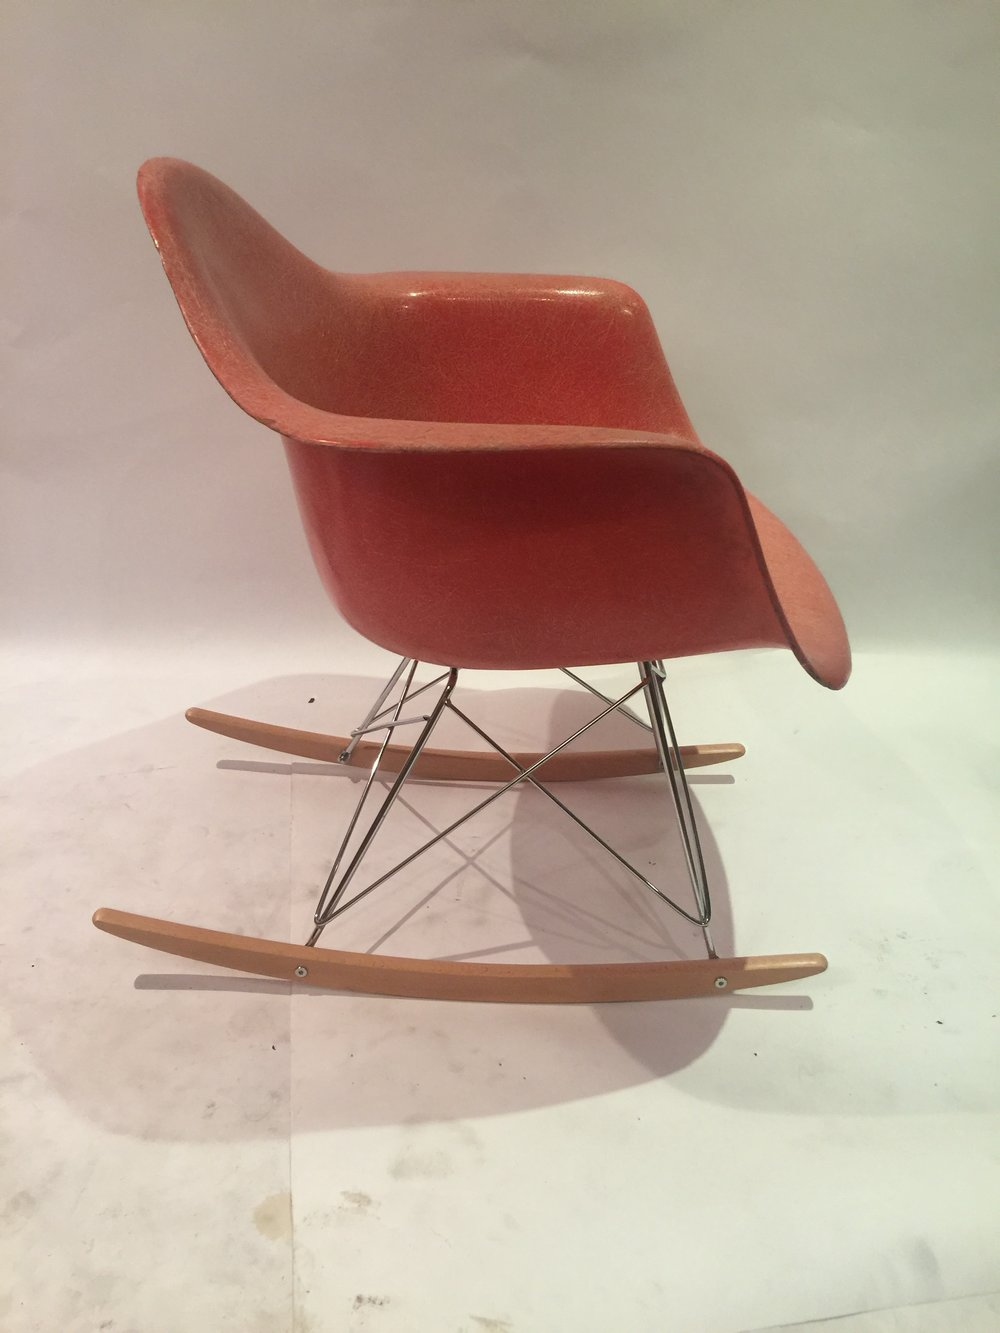 Eames rocking chair in salmon fiberglass 2.JPG